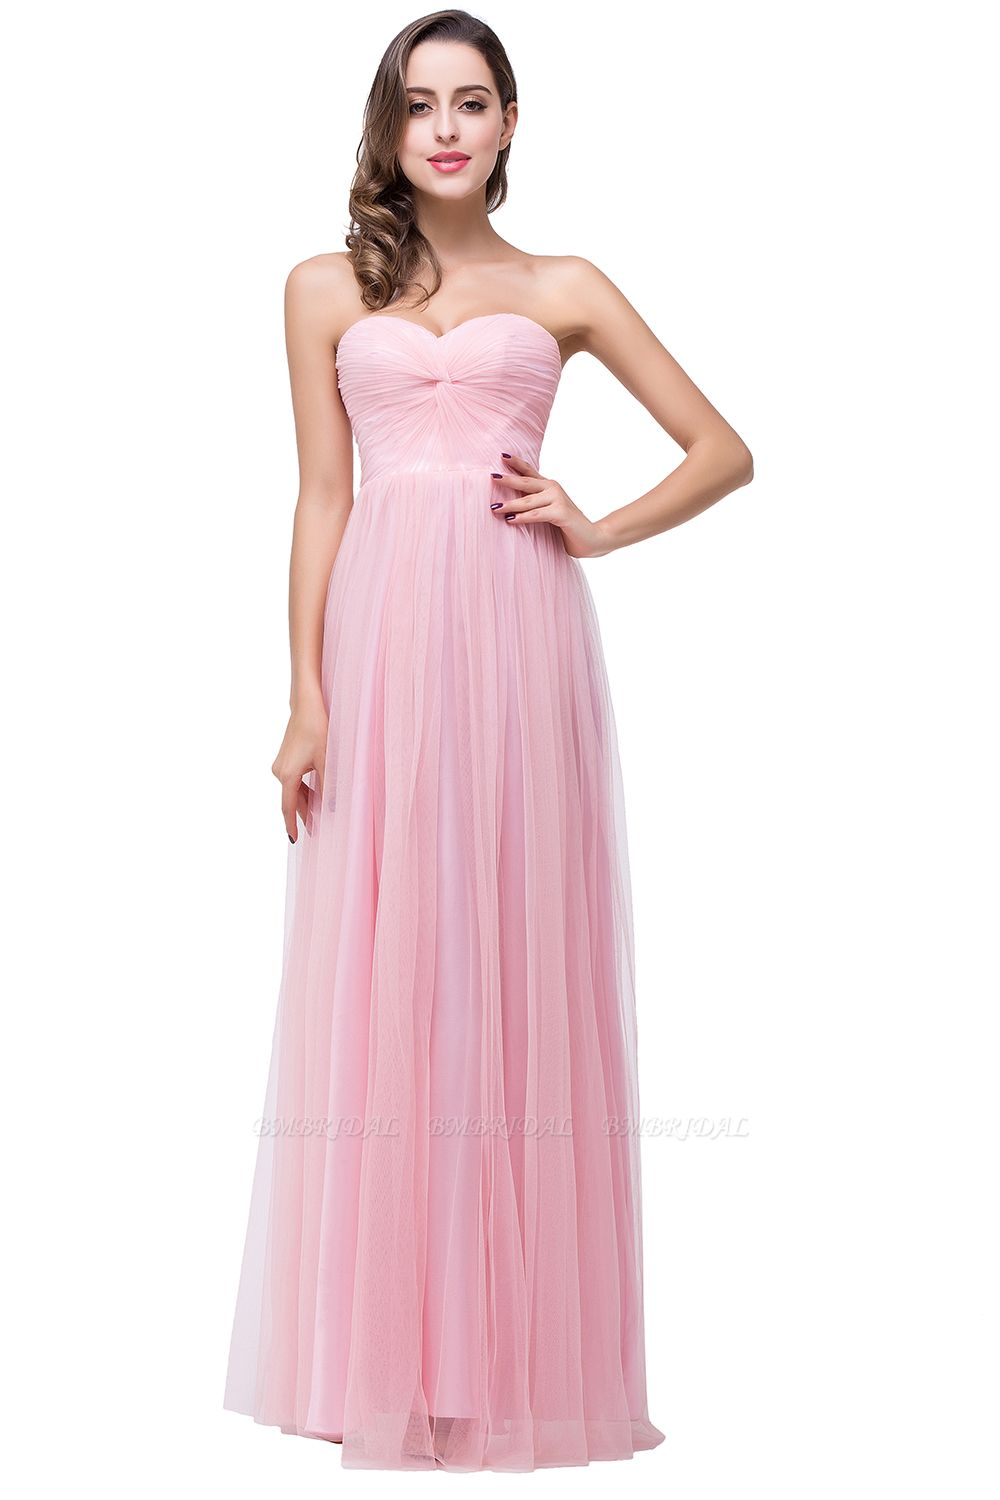 BMbridal Affordbale A-line Tulle Sweetheart Ruffle Pink Bridesmaid Dress Online In Stock